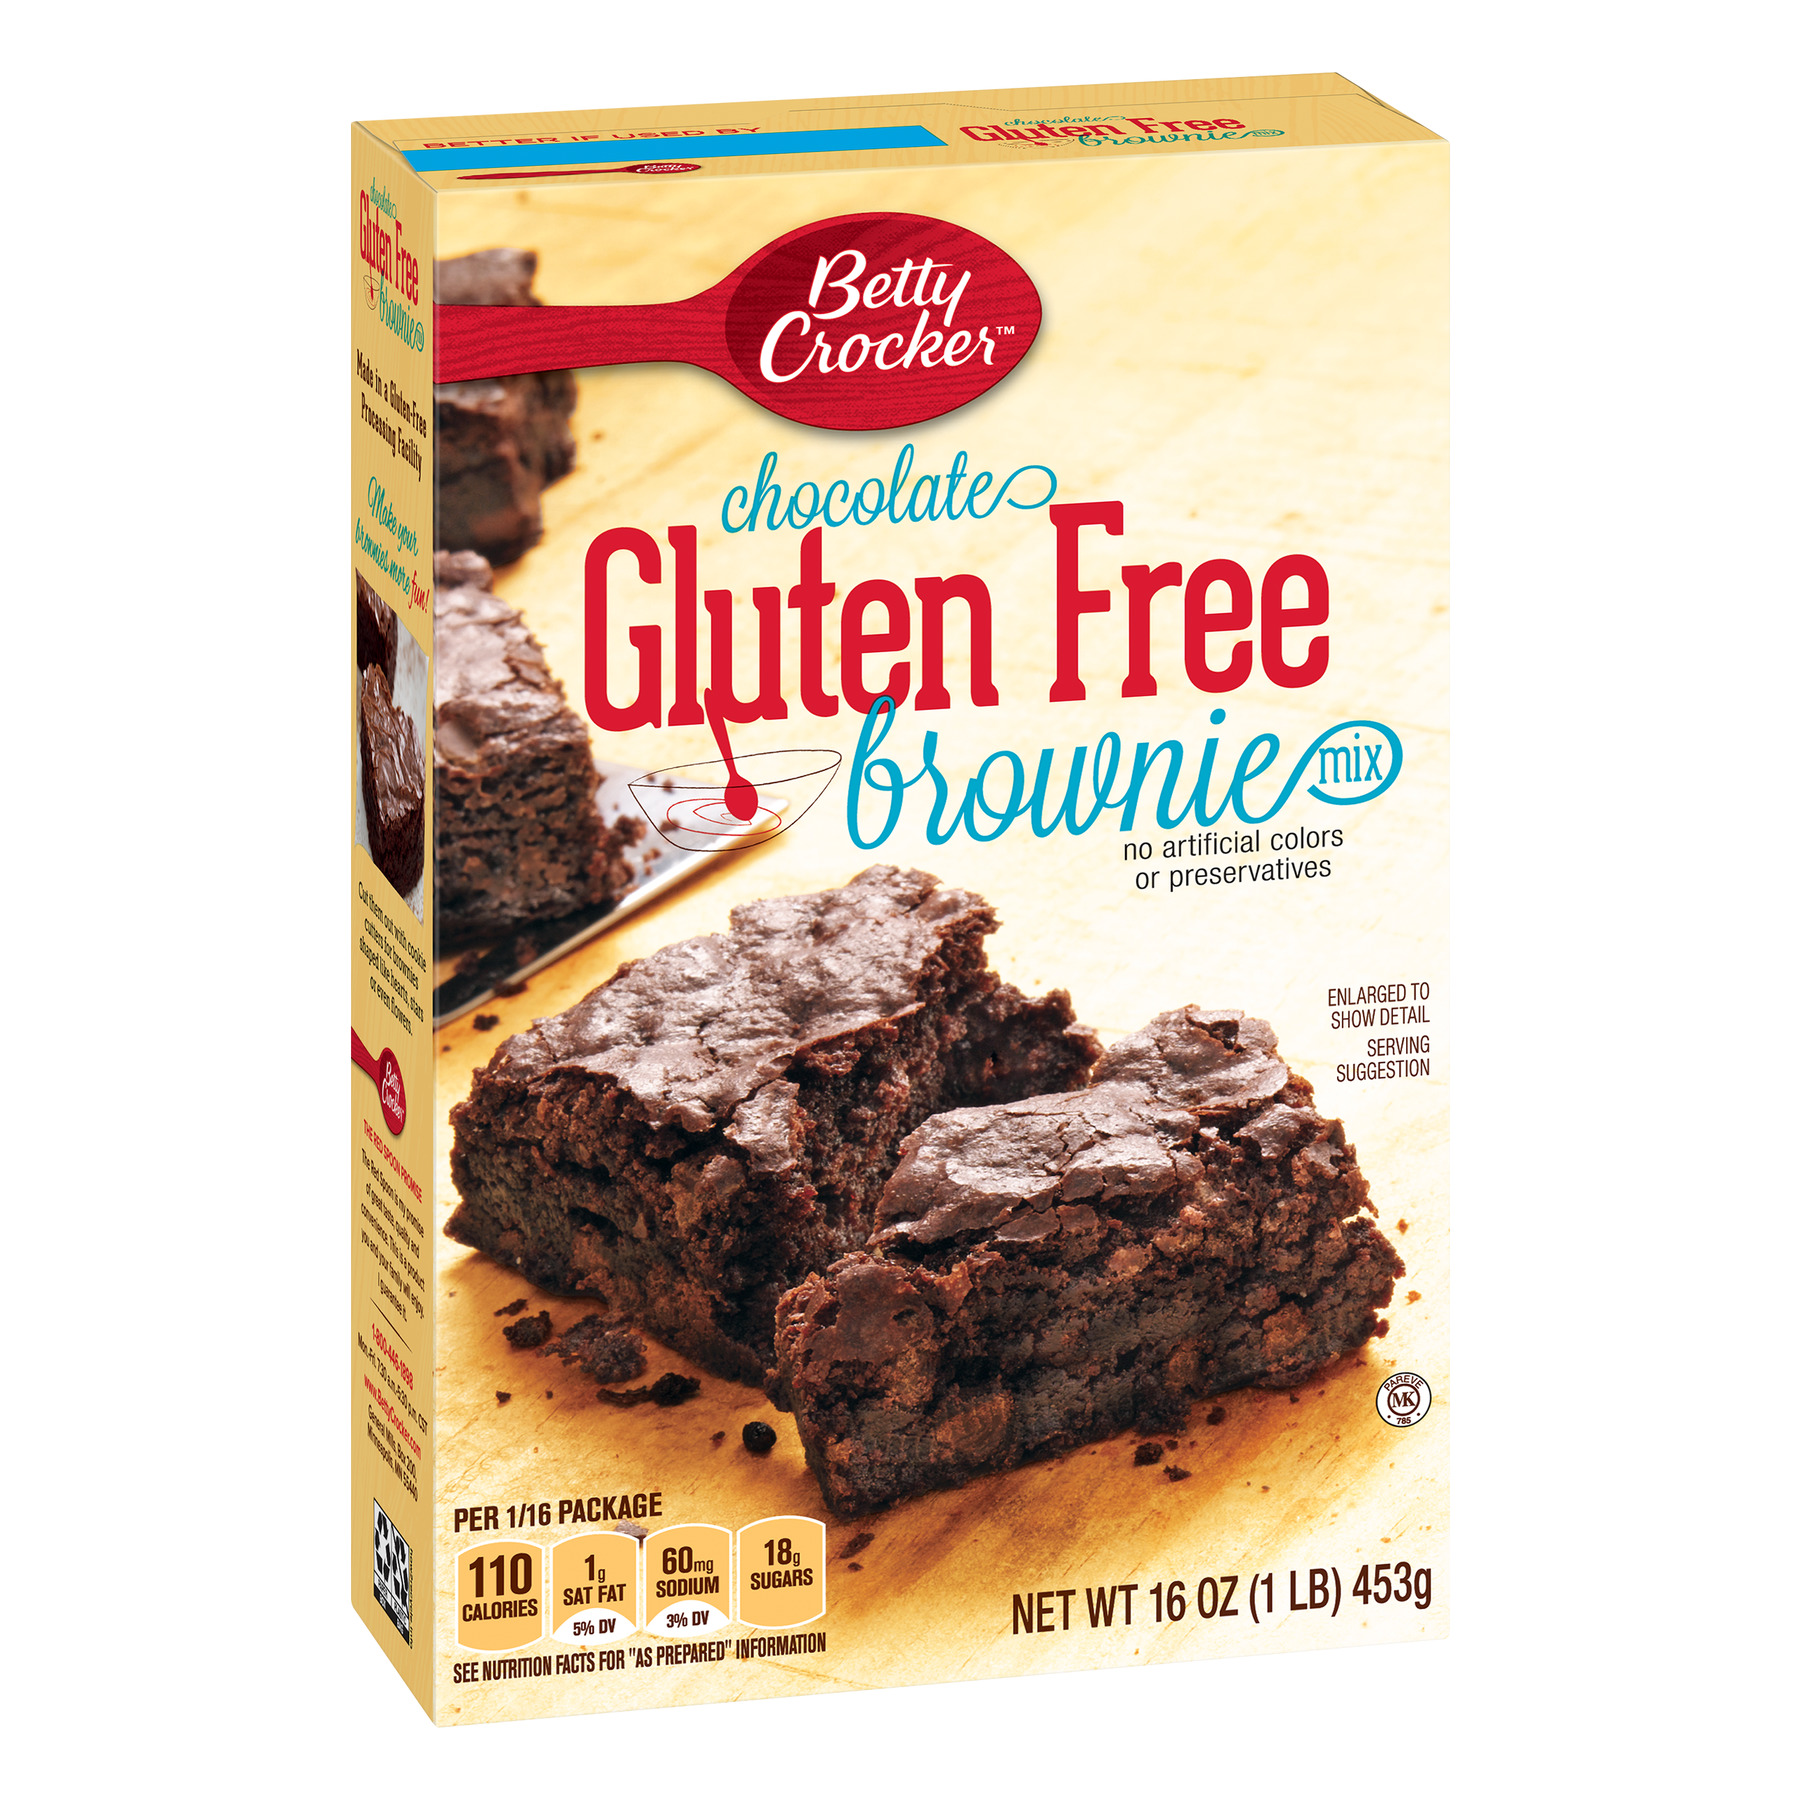 Betty Crocker Gluten Free Brownie Mix Chocolate, 16 oz